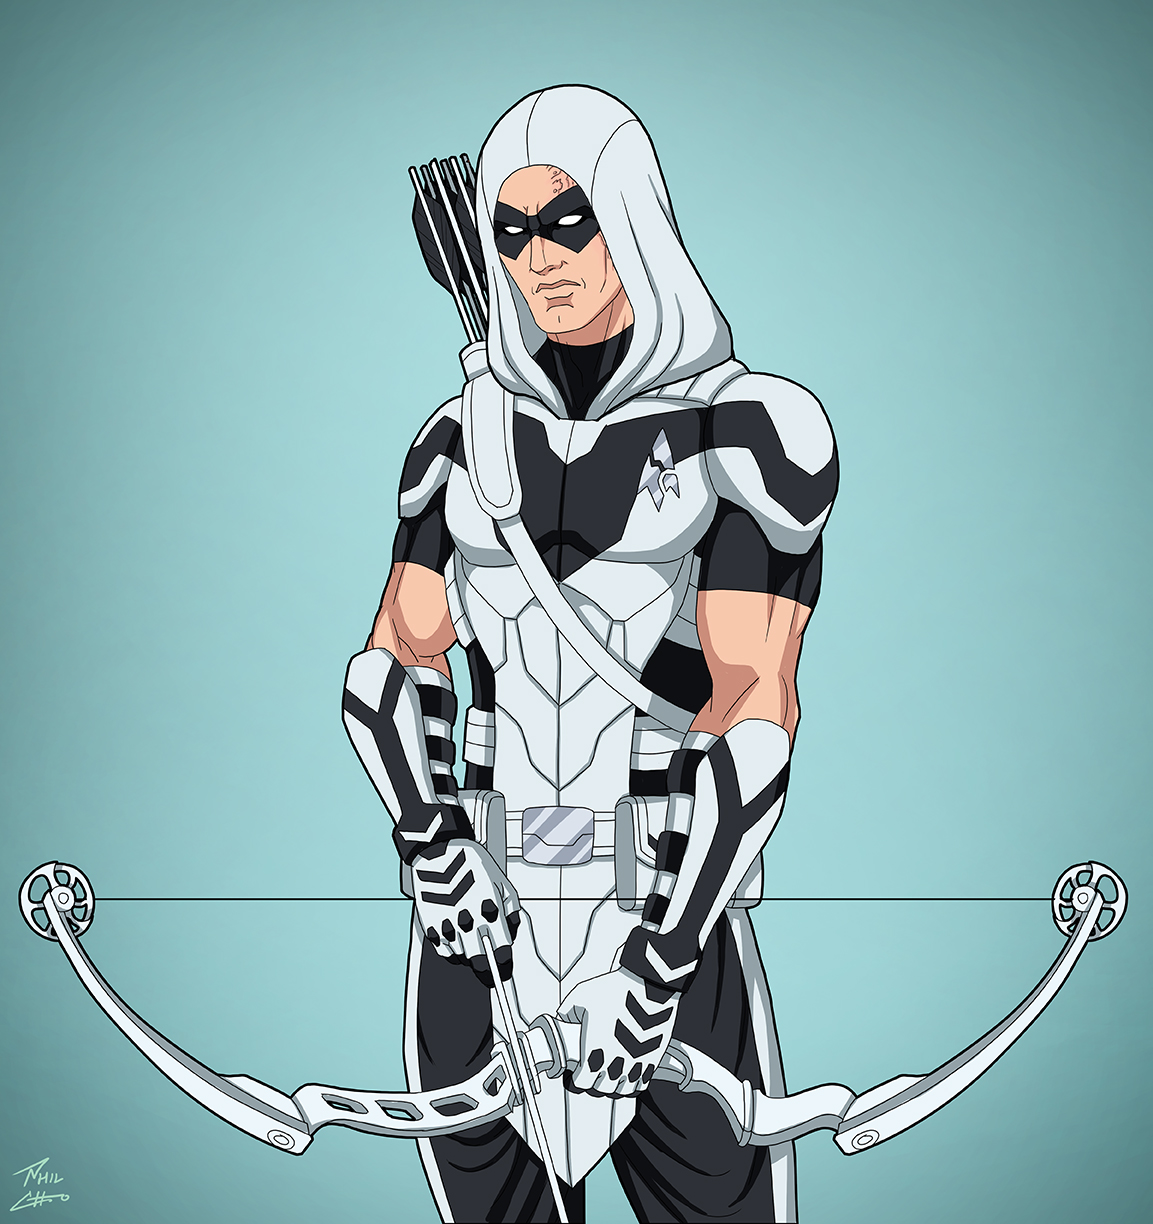 broken_arrow_hood2_web.jpg